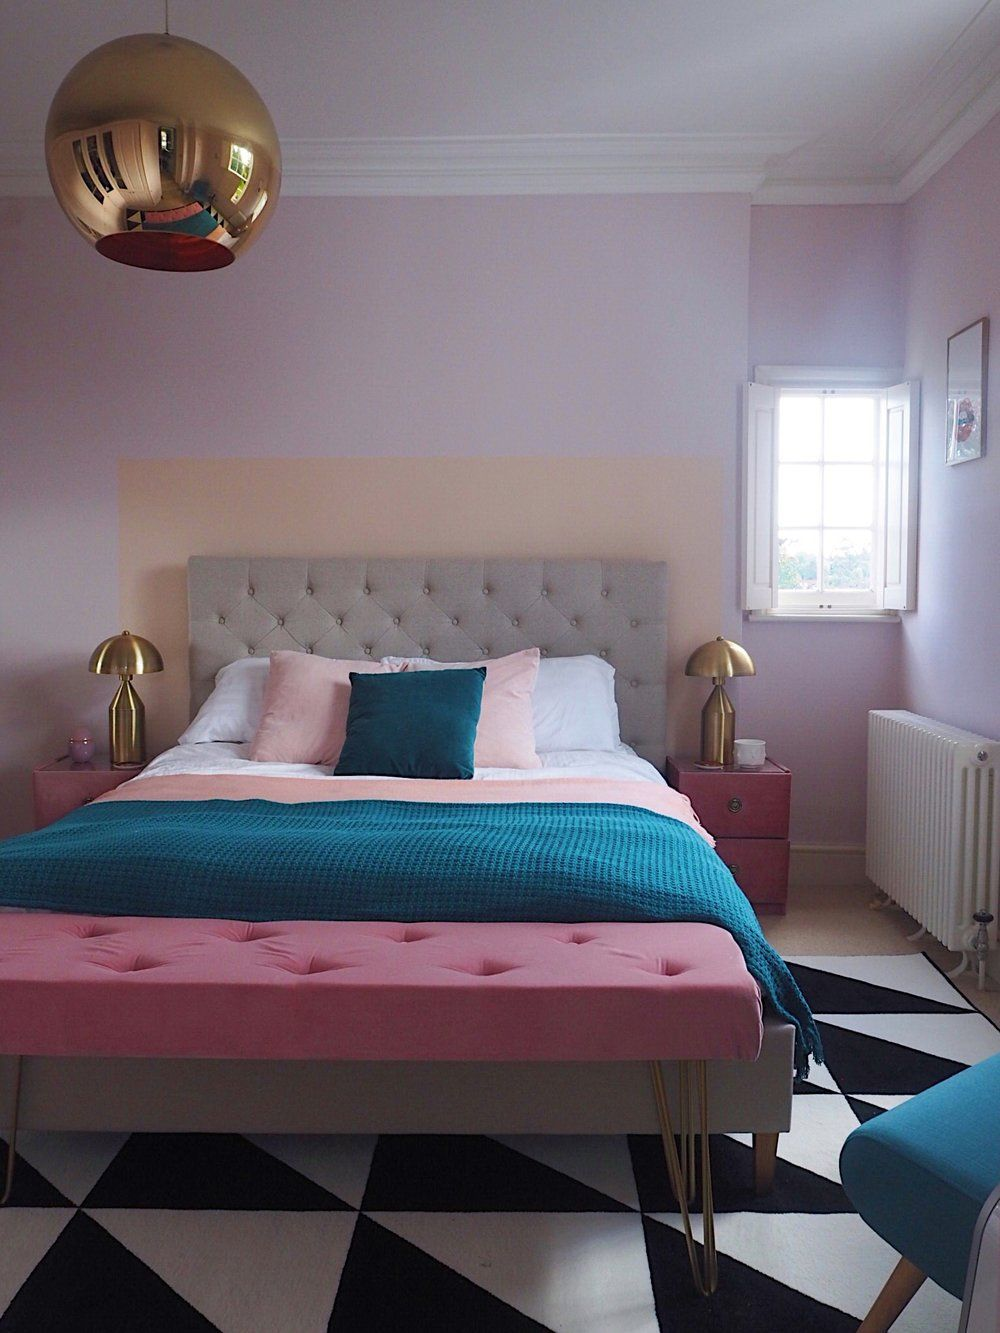 Revamp, Restyle, Reveal - The Pink Bedroom REVEAL! | Light ...